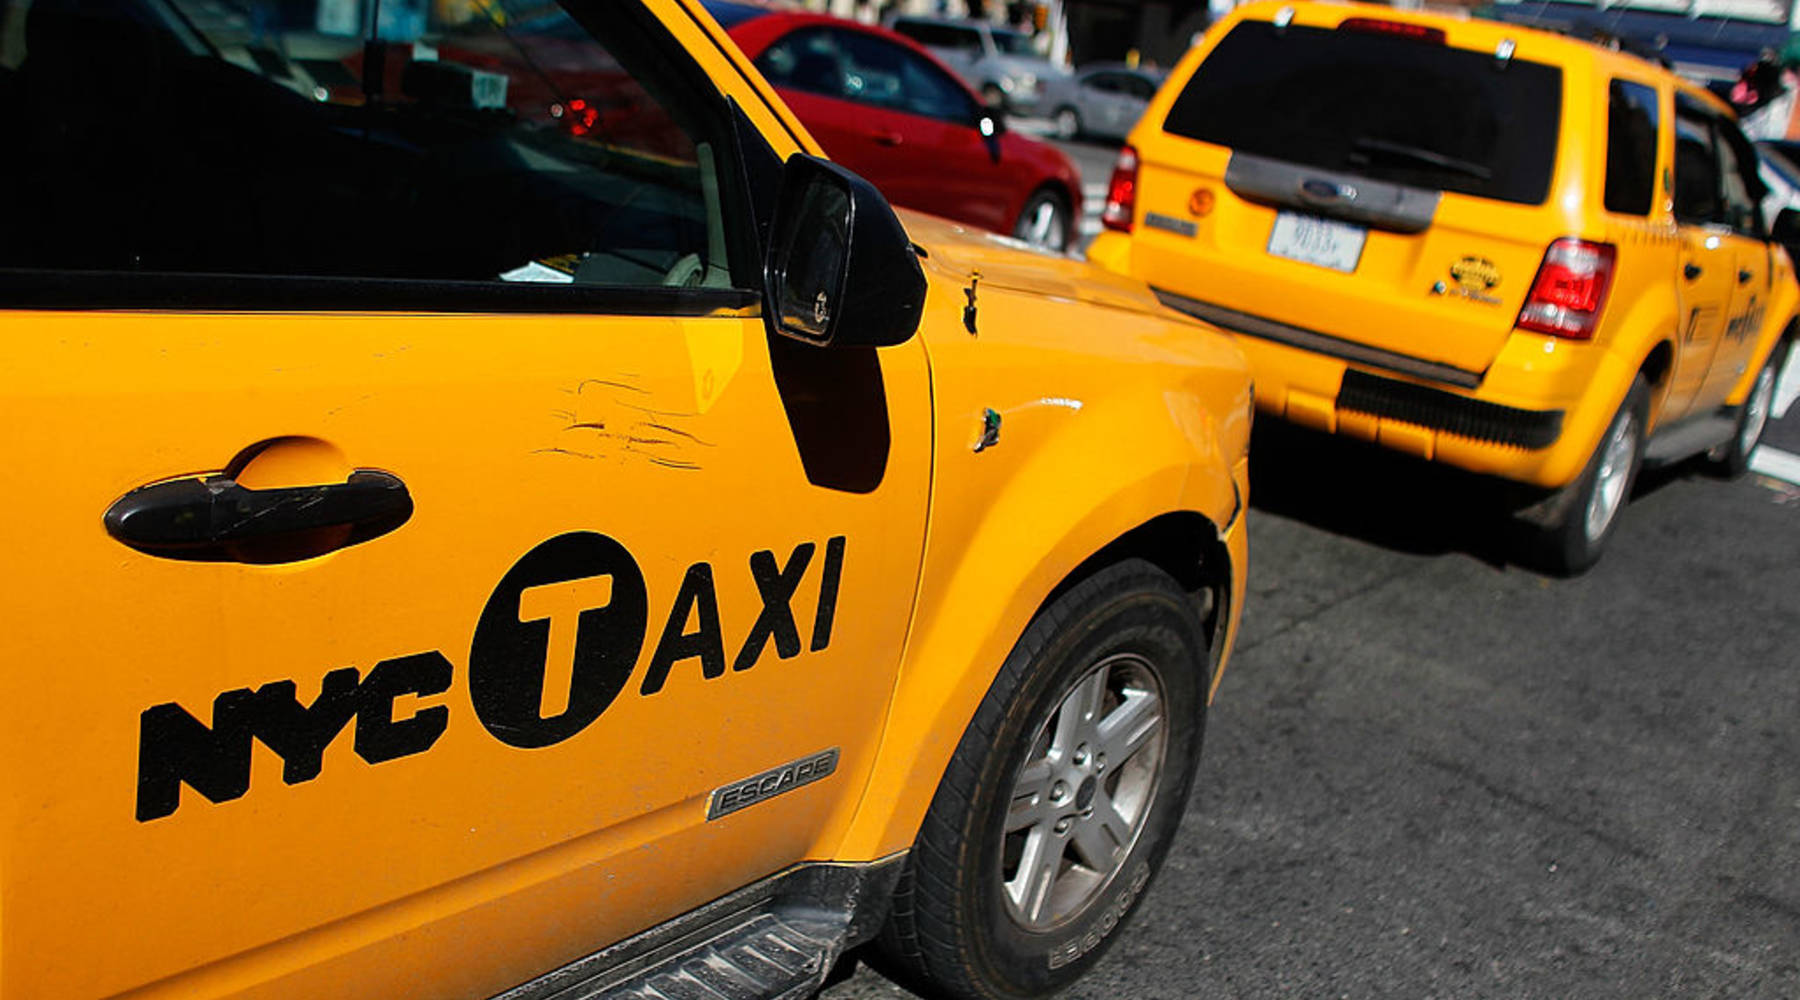 New York's taxi economy implodes - Marketplace